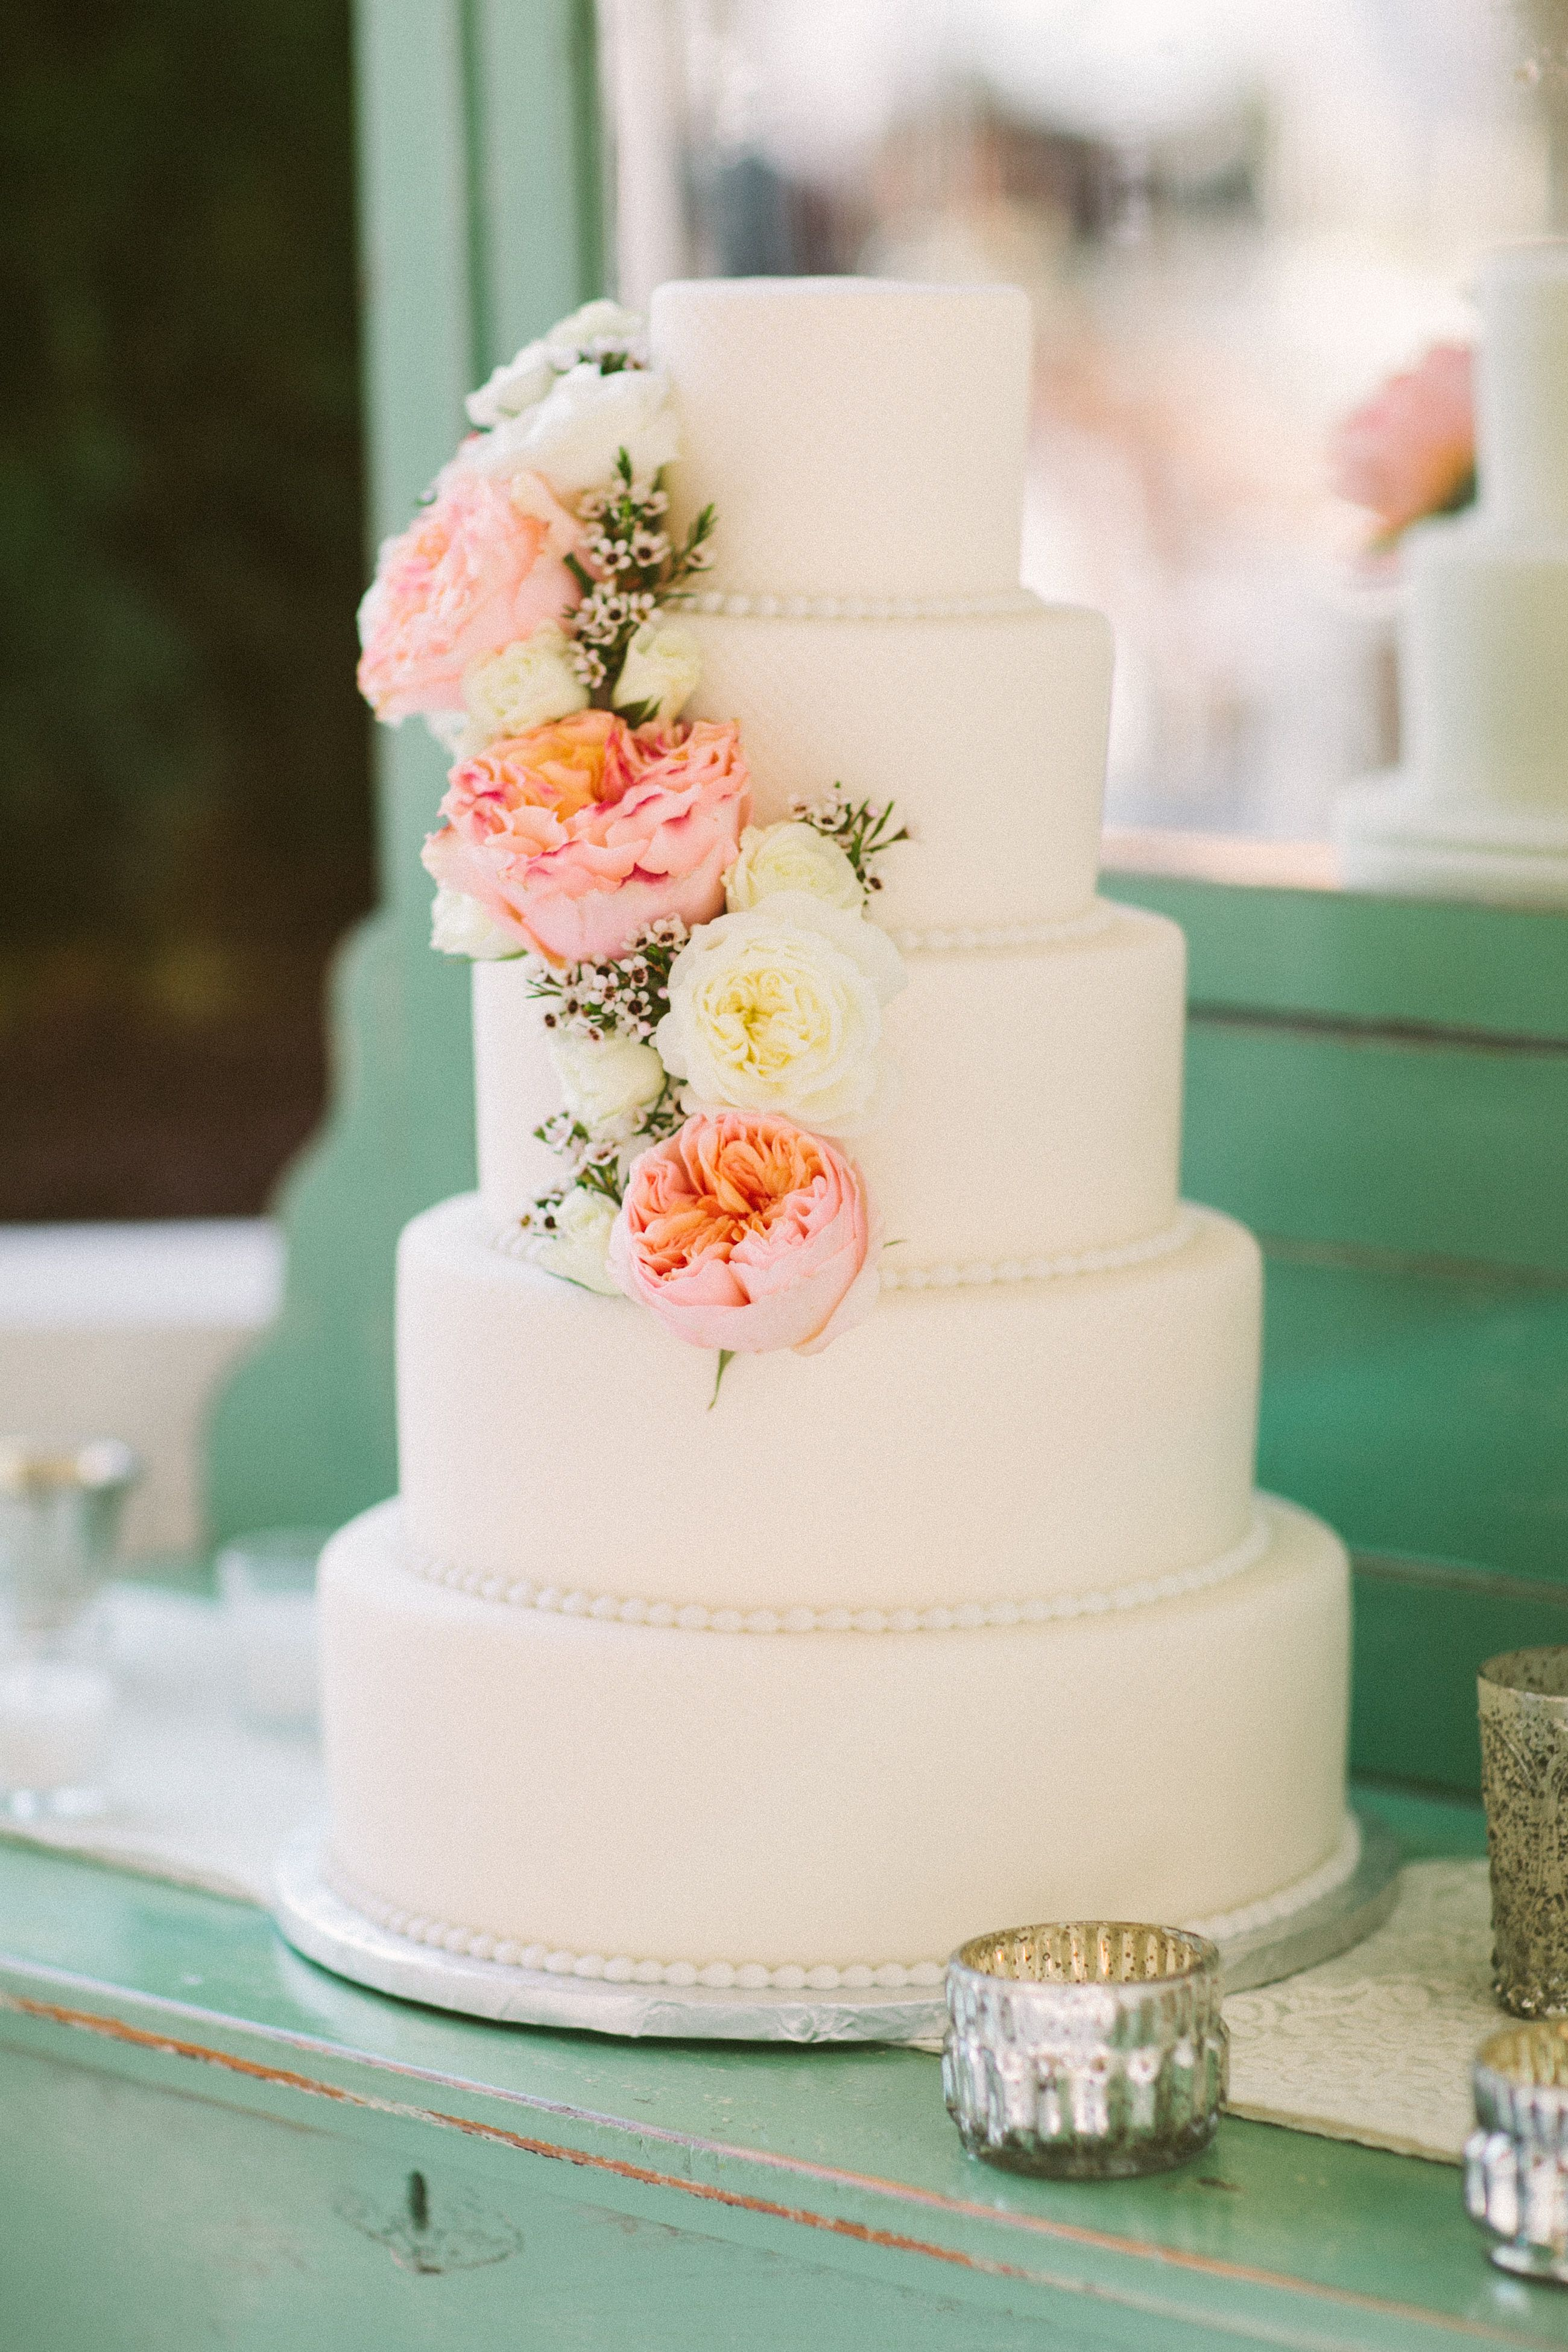 White Cake With Peach Flower Cascade On A Vintage Turquoise Dresser